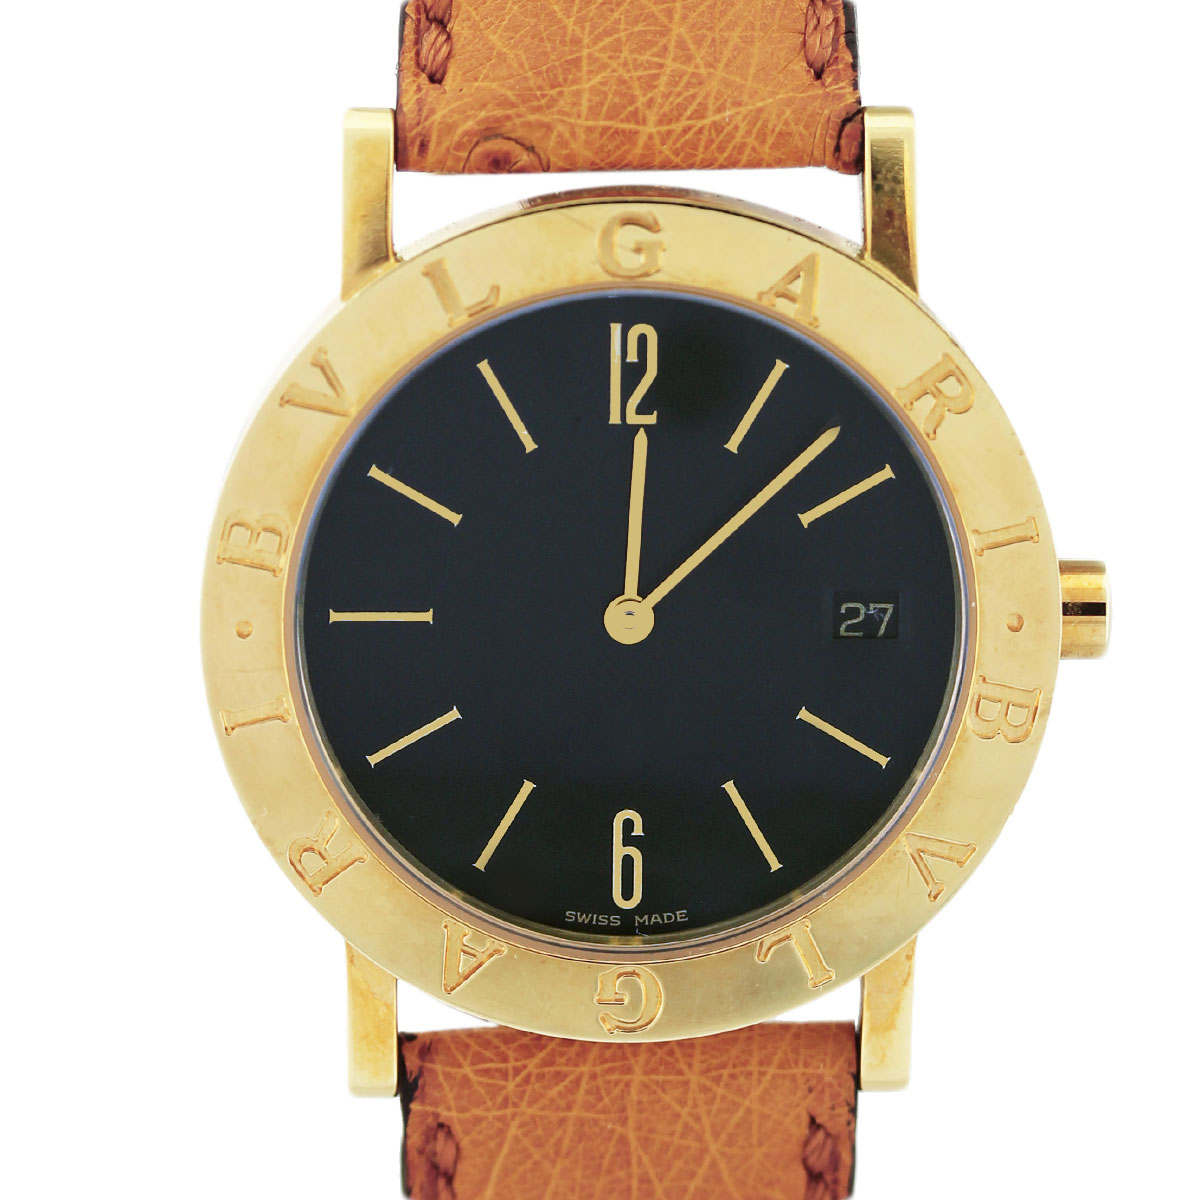 Bvlgari Bulgari Bb 33 Gl Automatic Yellow Gold Mens Watch